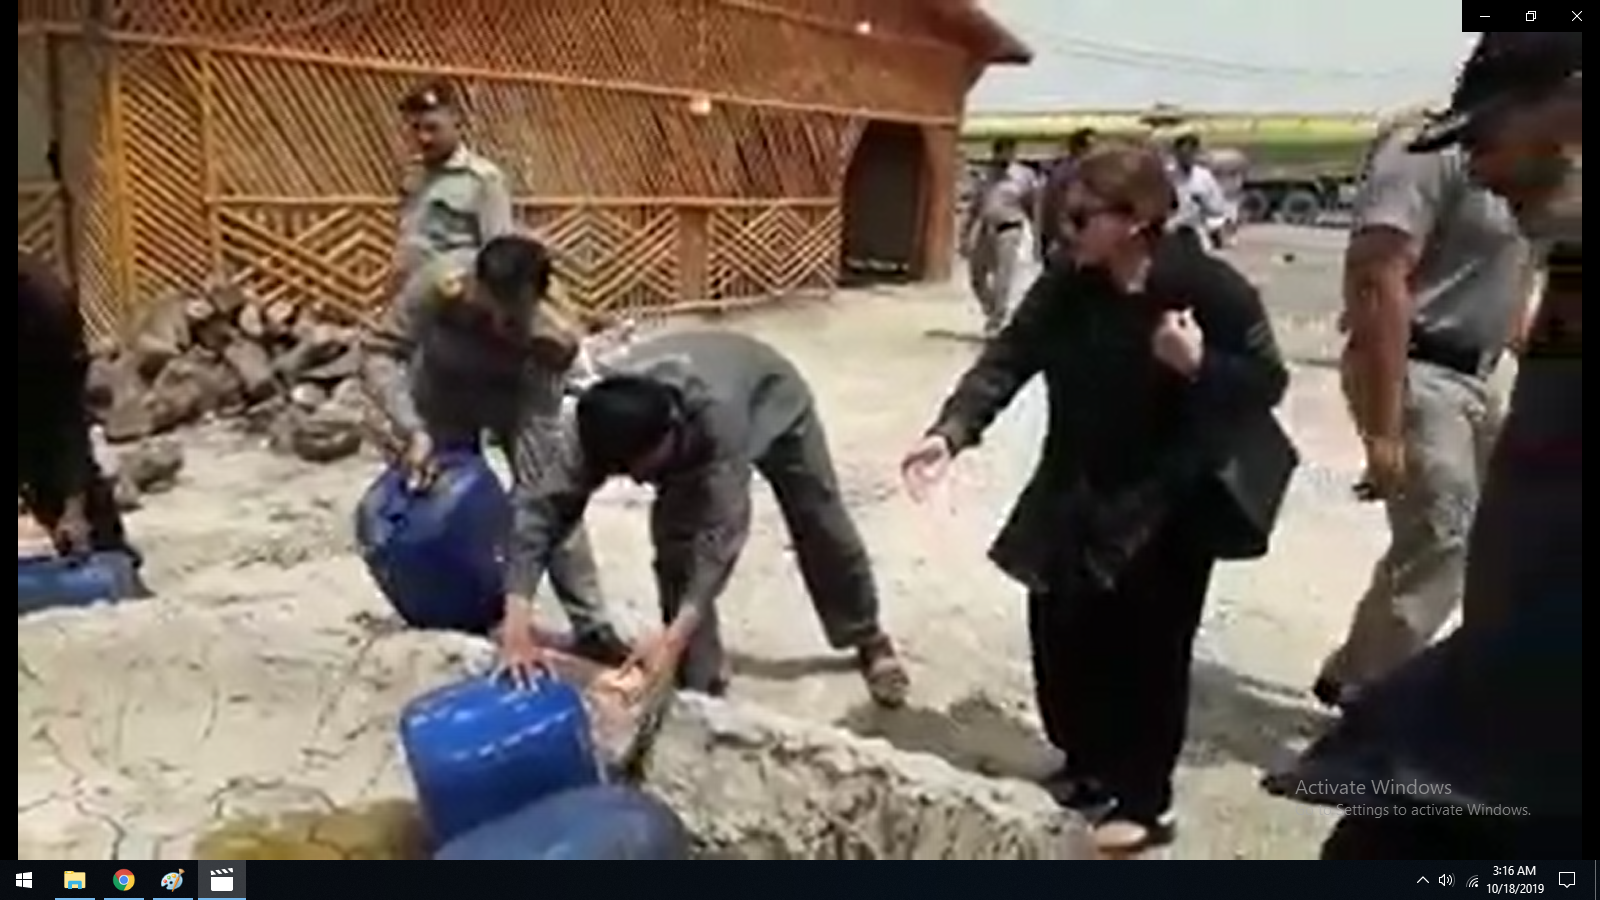 Direction of Aisha Junejo Discarding Open market Oil, Which is hazardous for human consumption. It was being used at a restaurant on the Panoaqil Highway.